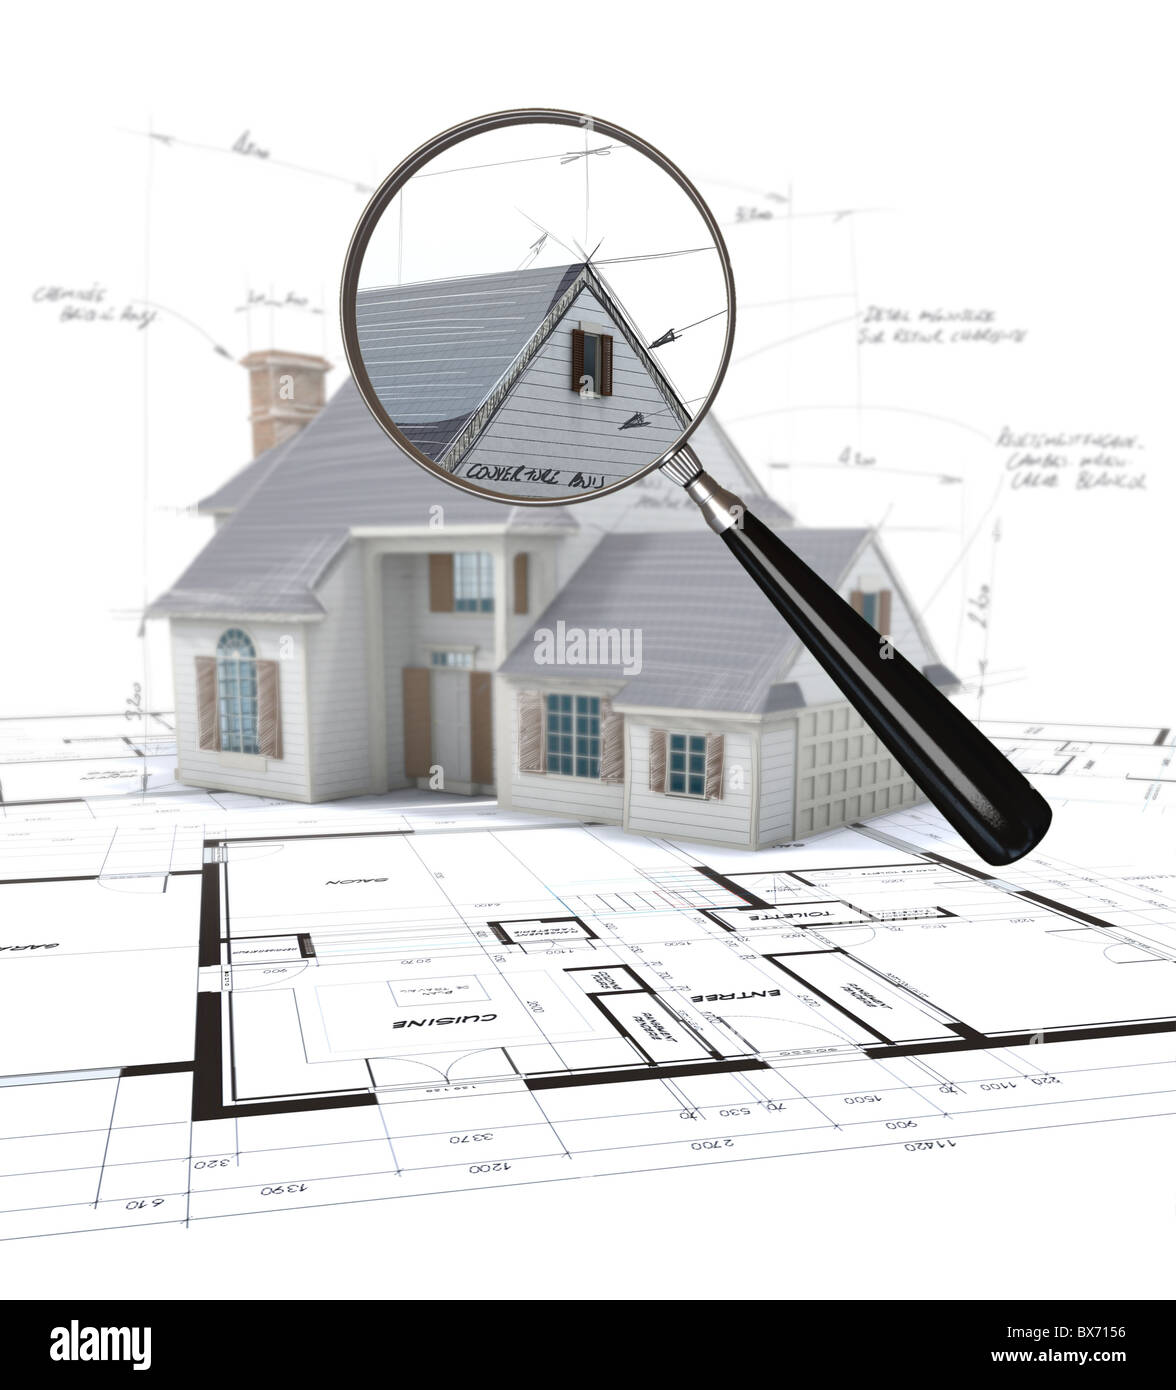 3D rendering of an architecture model scrutinized by a magnifying glass  Stock Photo